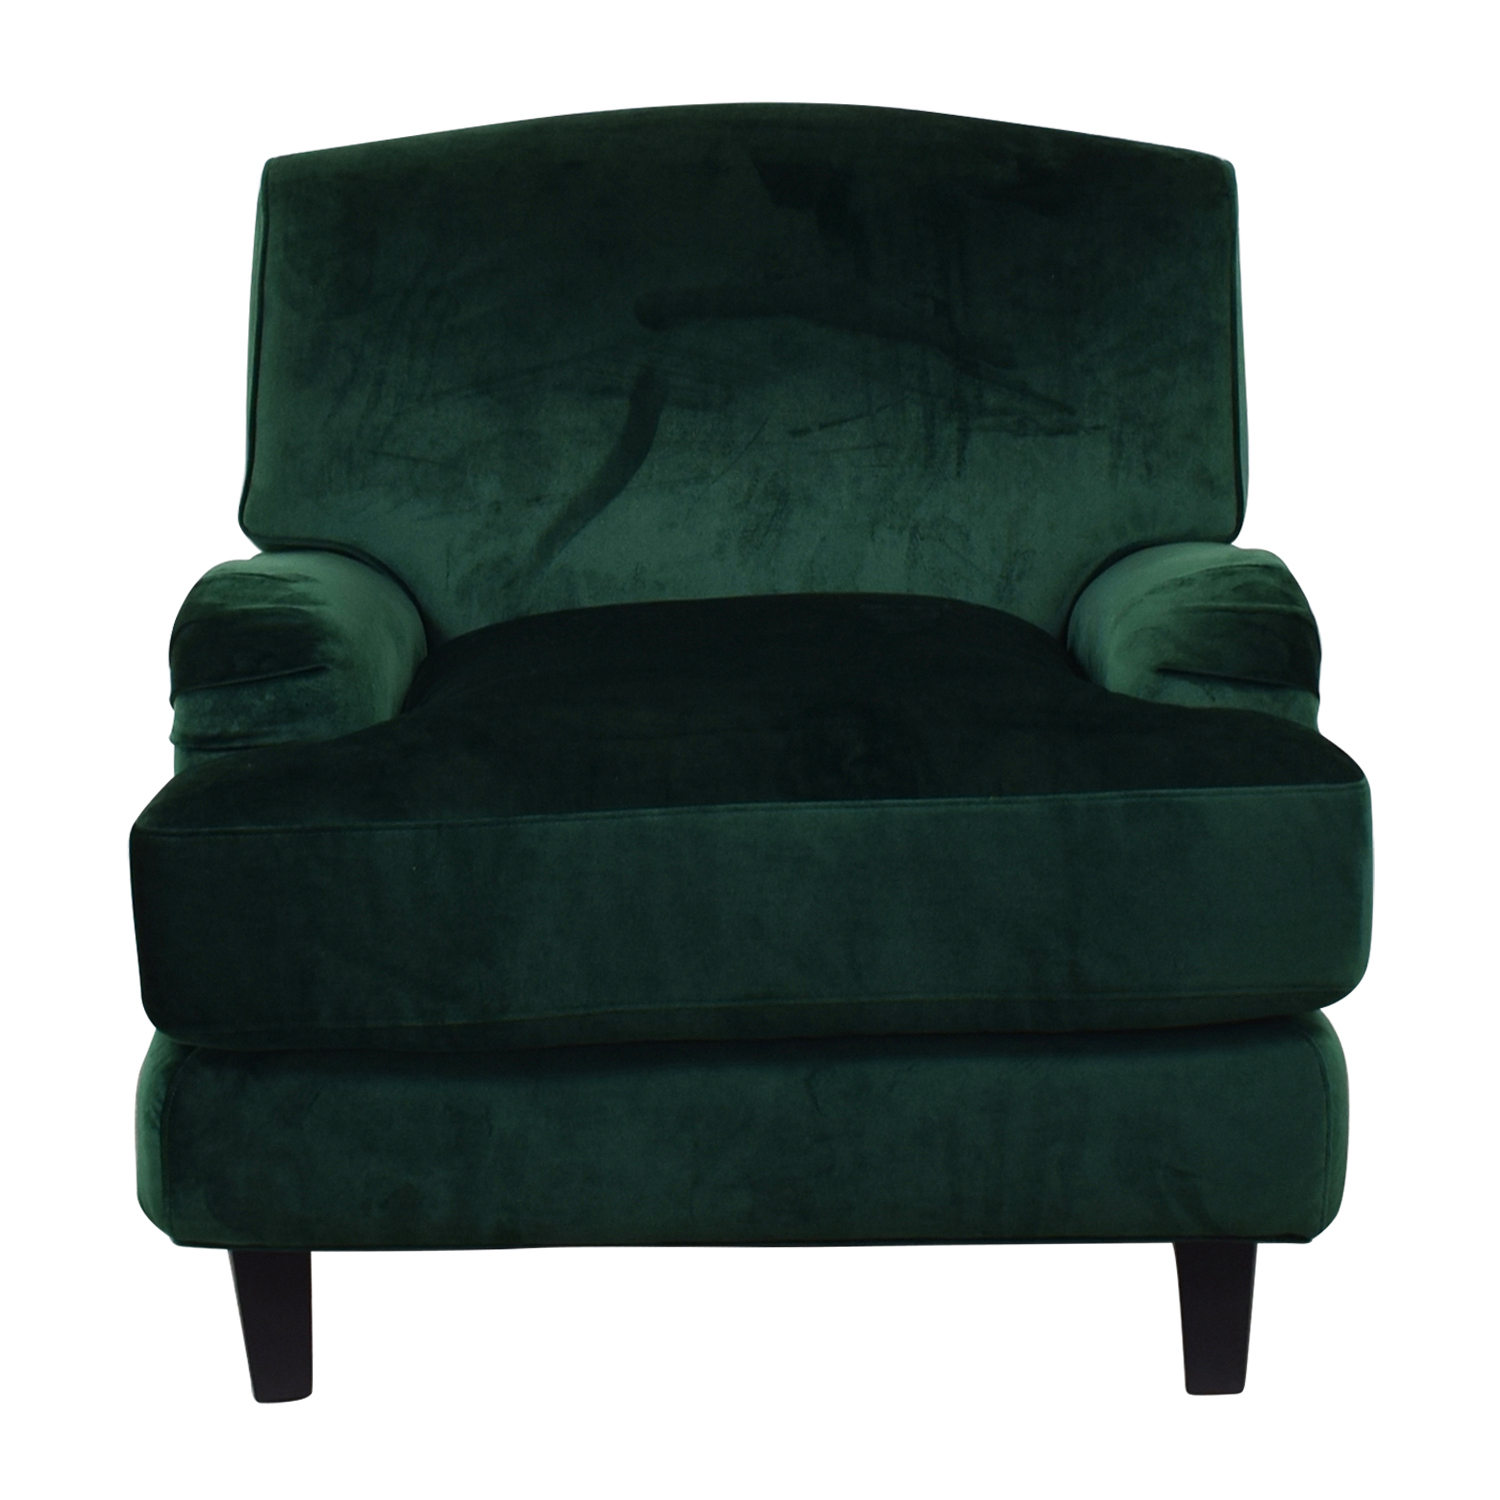 Rose Emerald Green Chair price